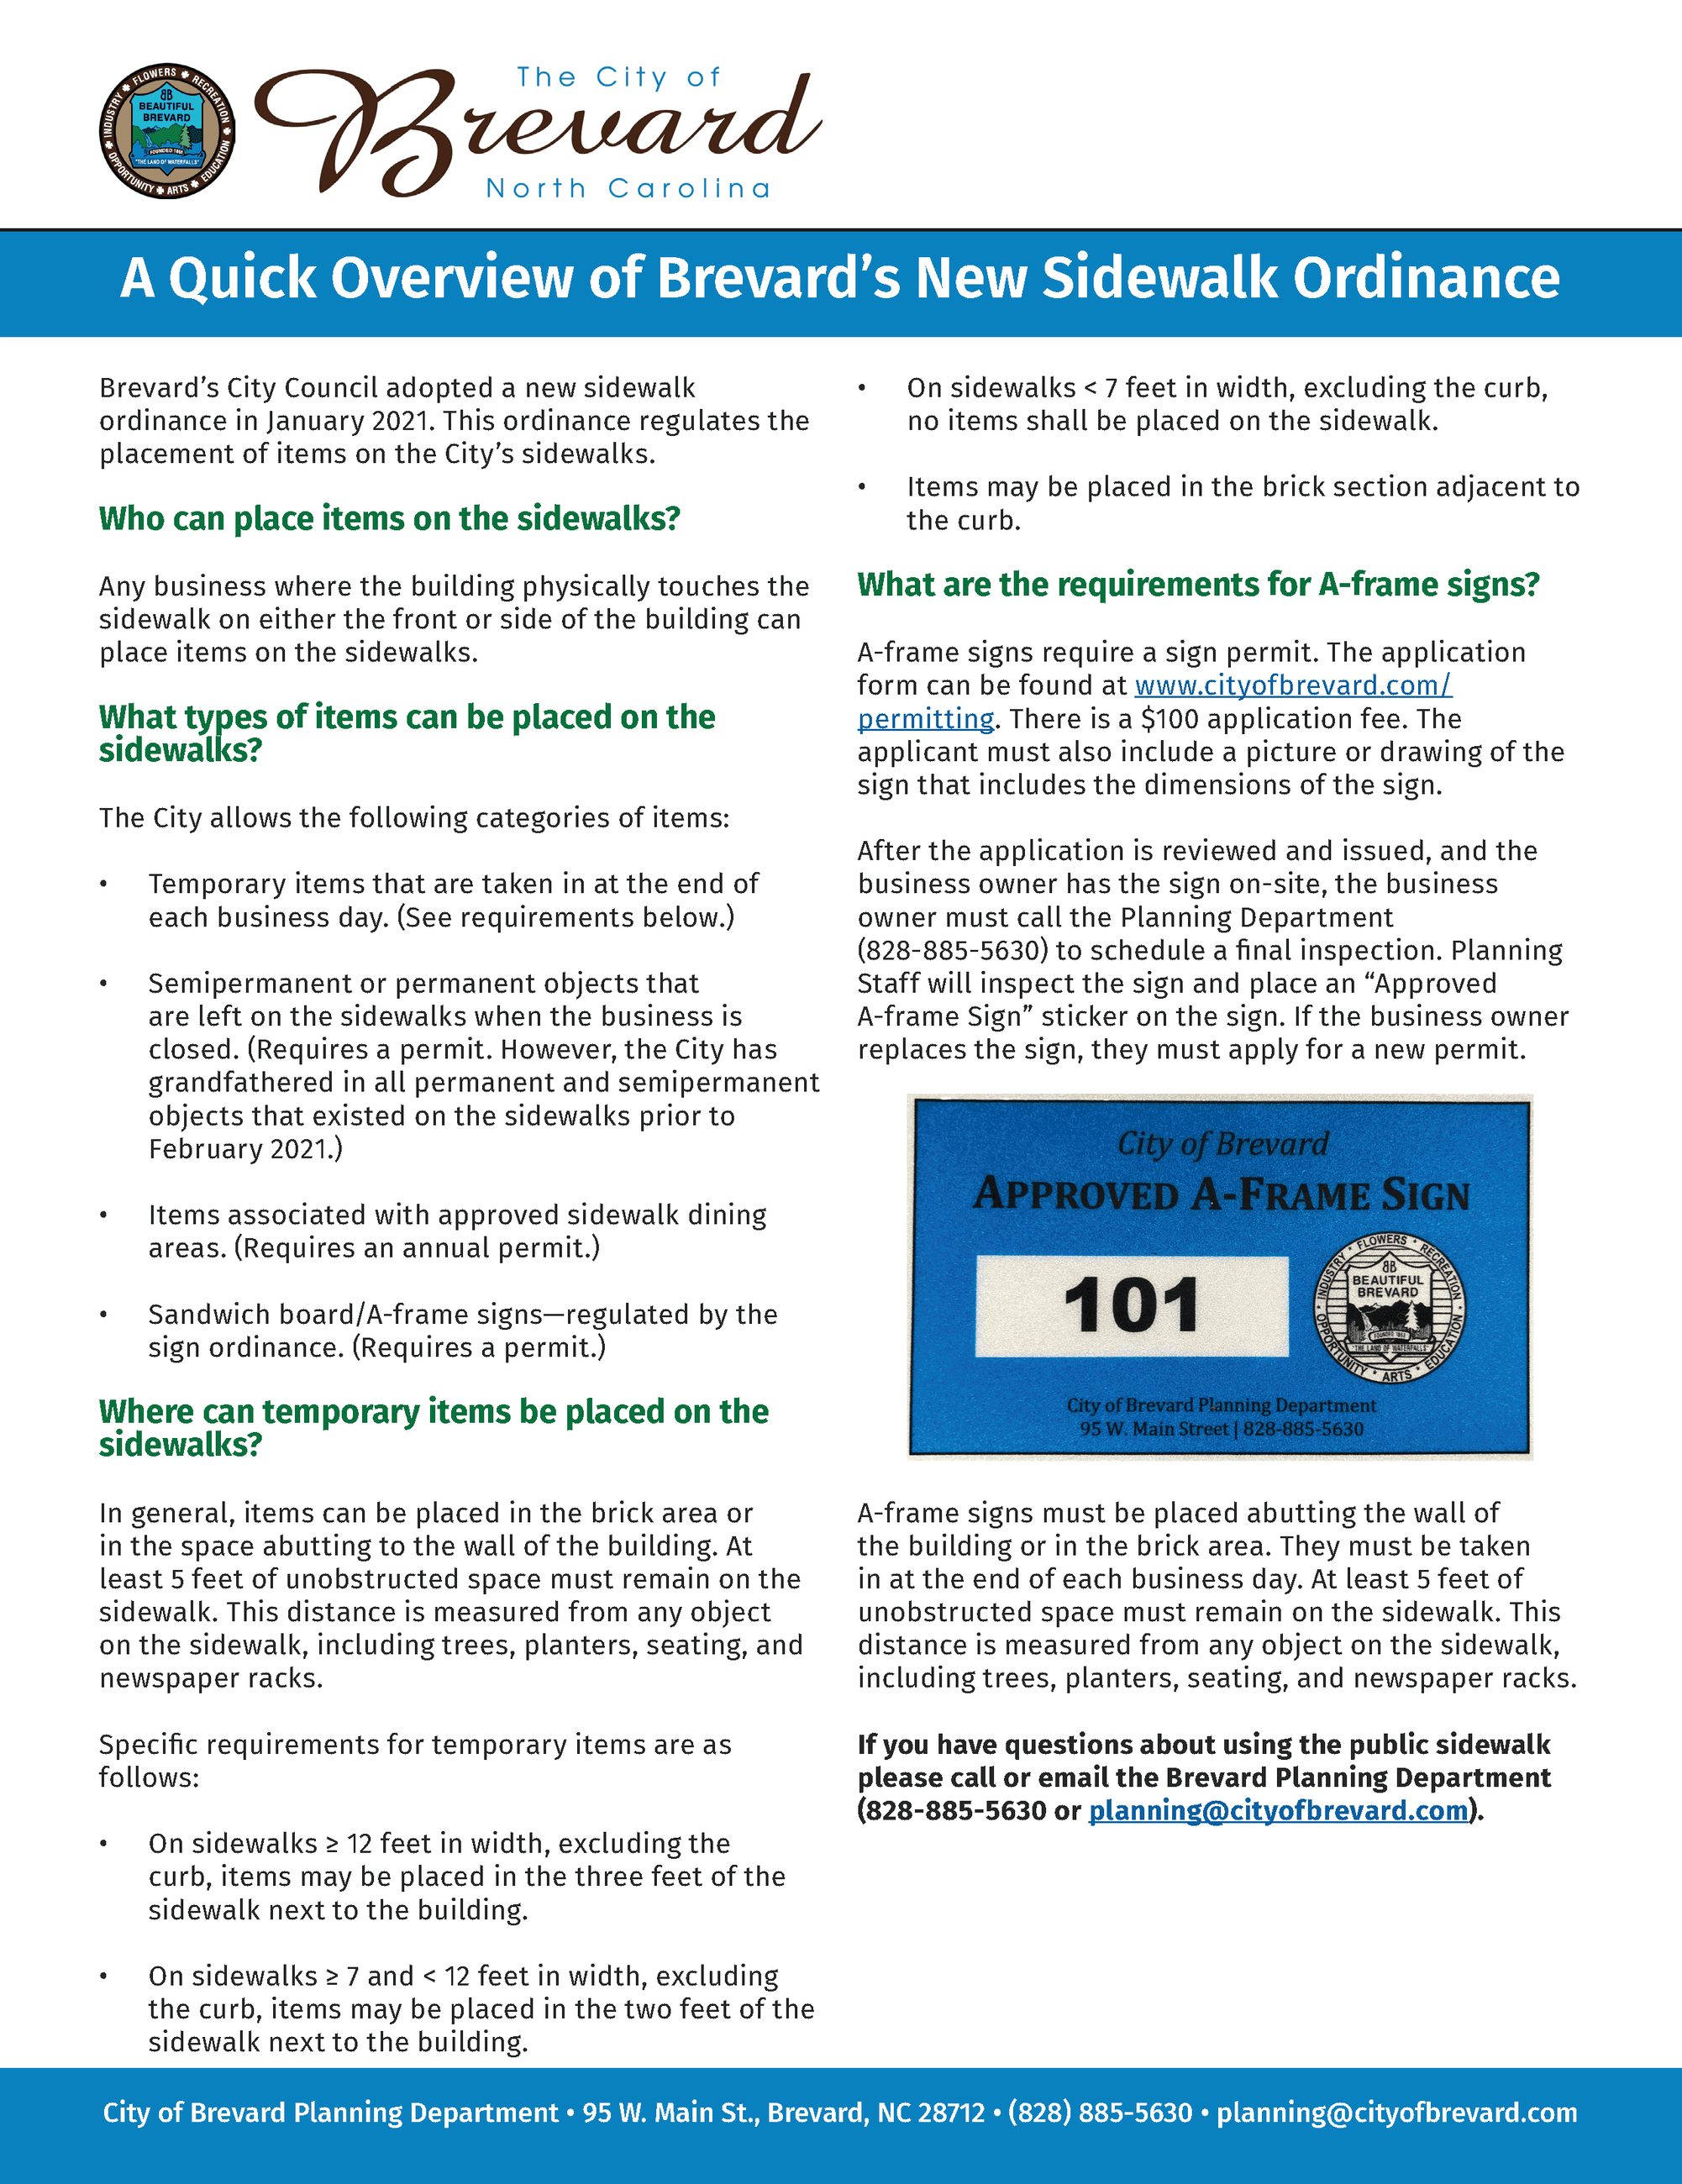 A Quick Overview of Brevard's New Sidewalk Ordinance